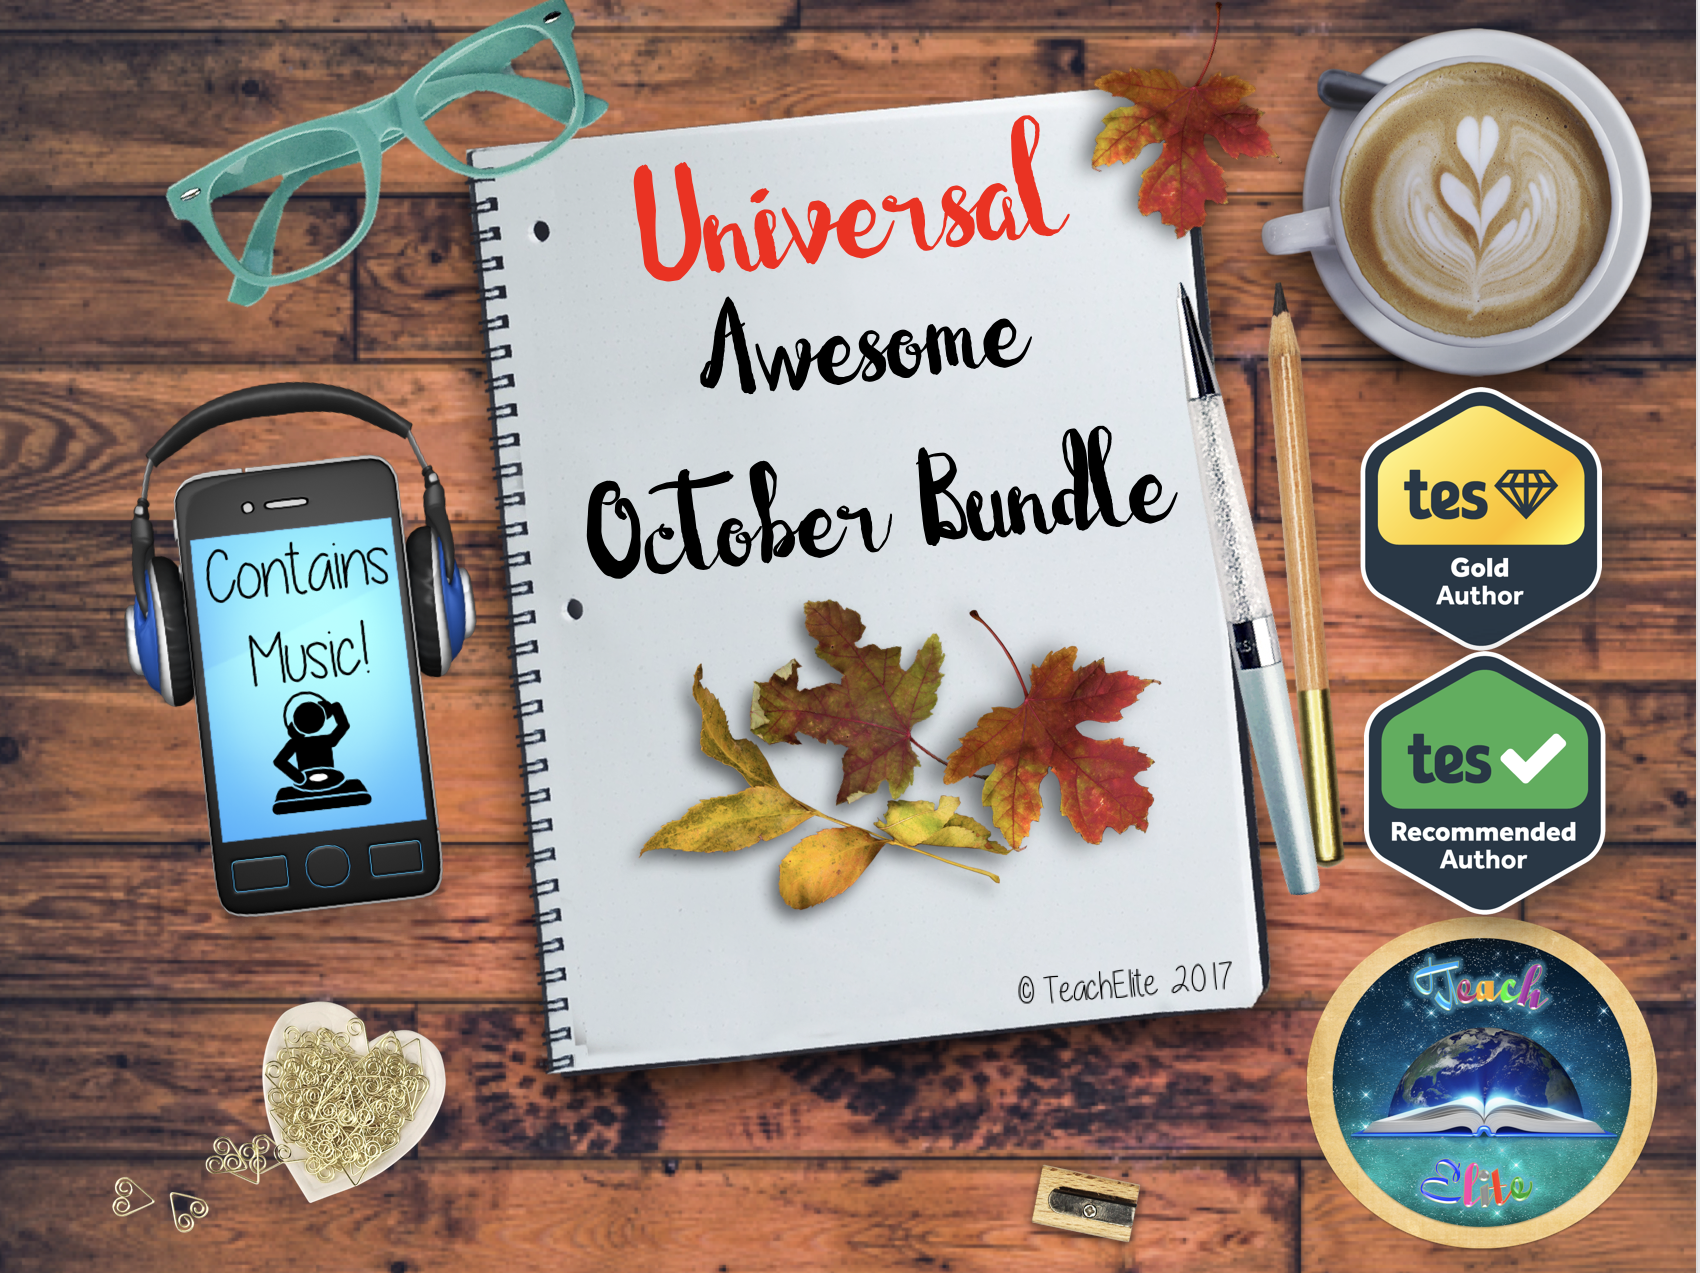 Awesome October Bundle